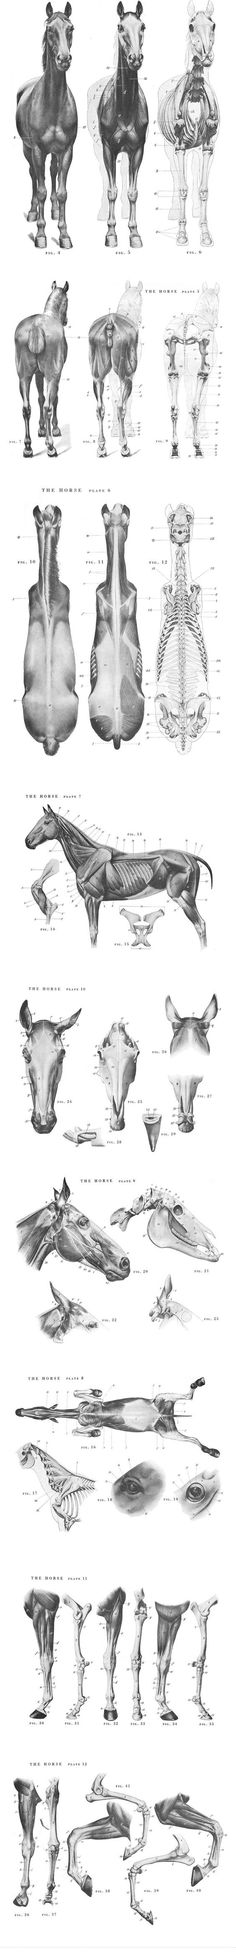 The most complete, accurate and qualified horse anatomy reference seen in all my life, love it Horse Anatomy, Animal Anatomy, Horse Drawings, Animal Drawings, Drawing Animals, Horse Sketch, Horse Facts, Drawn Art, Poses References